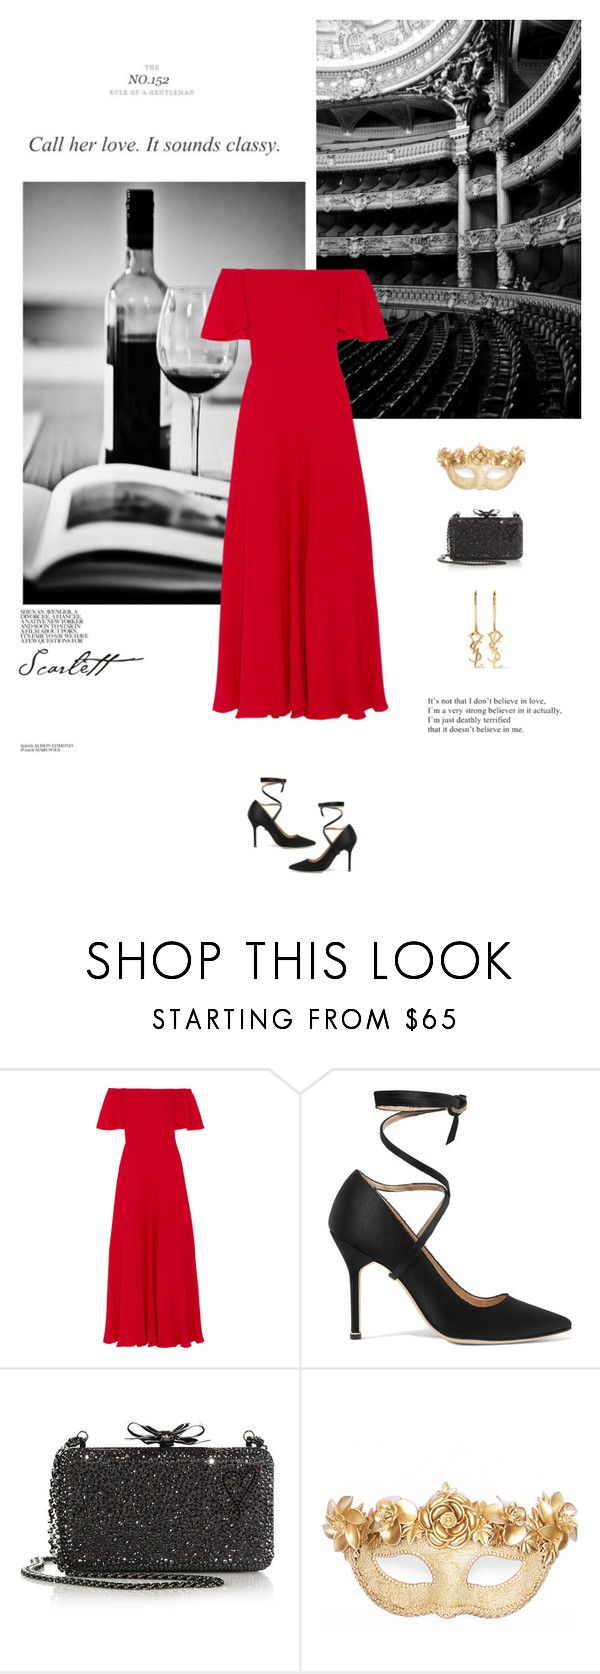 """La Scala"" by olivochka ❤ liked on Polyvore featuring Retour, Valentino, Vetements, Christian Louboutin, Masquerade, Yves Saint Laurent, red, valentino and opera"